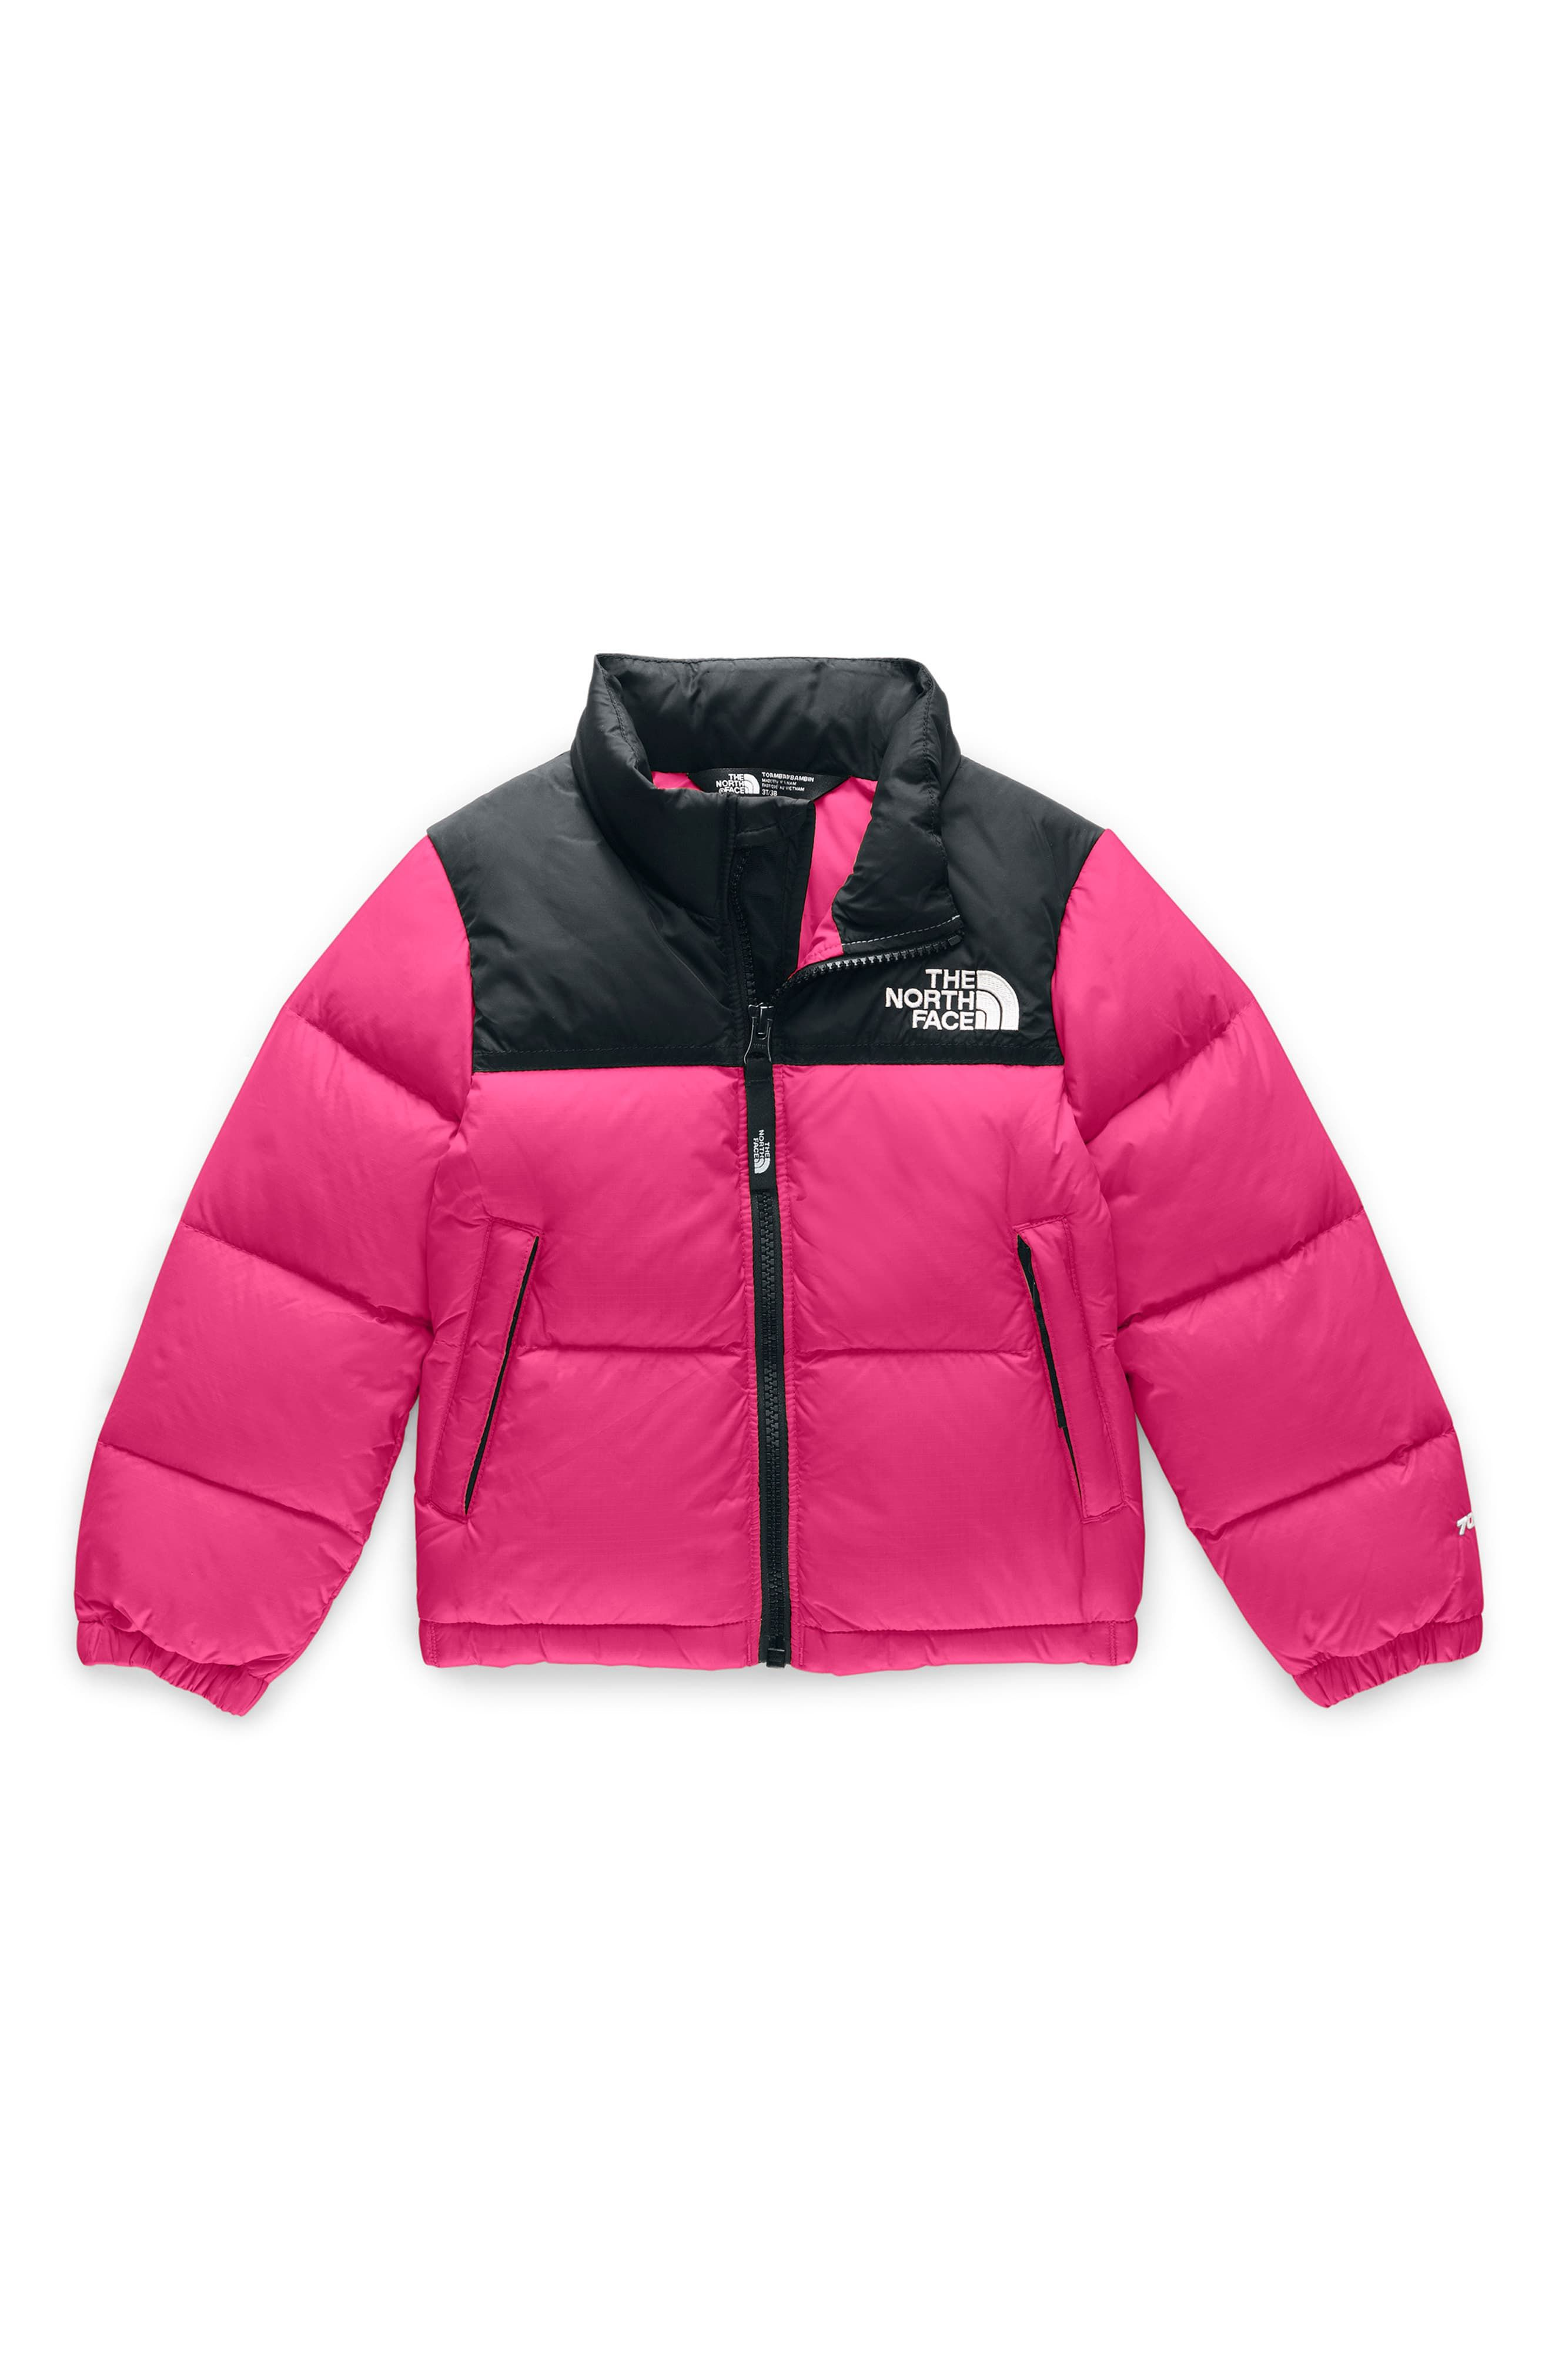 Toddler Girl S The North Face Nuptse 1996 700 Fill Power Down Jacket Size 2t Pink Down Jacket North Face Nuptse The North Face [ 4048 x 2640 Pixel ]